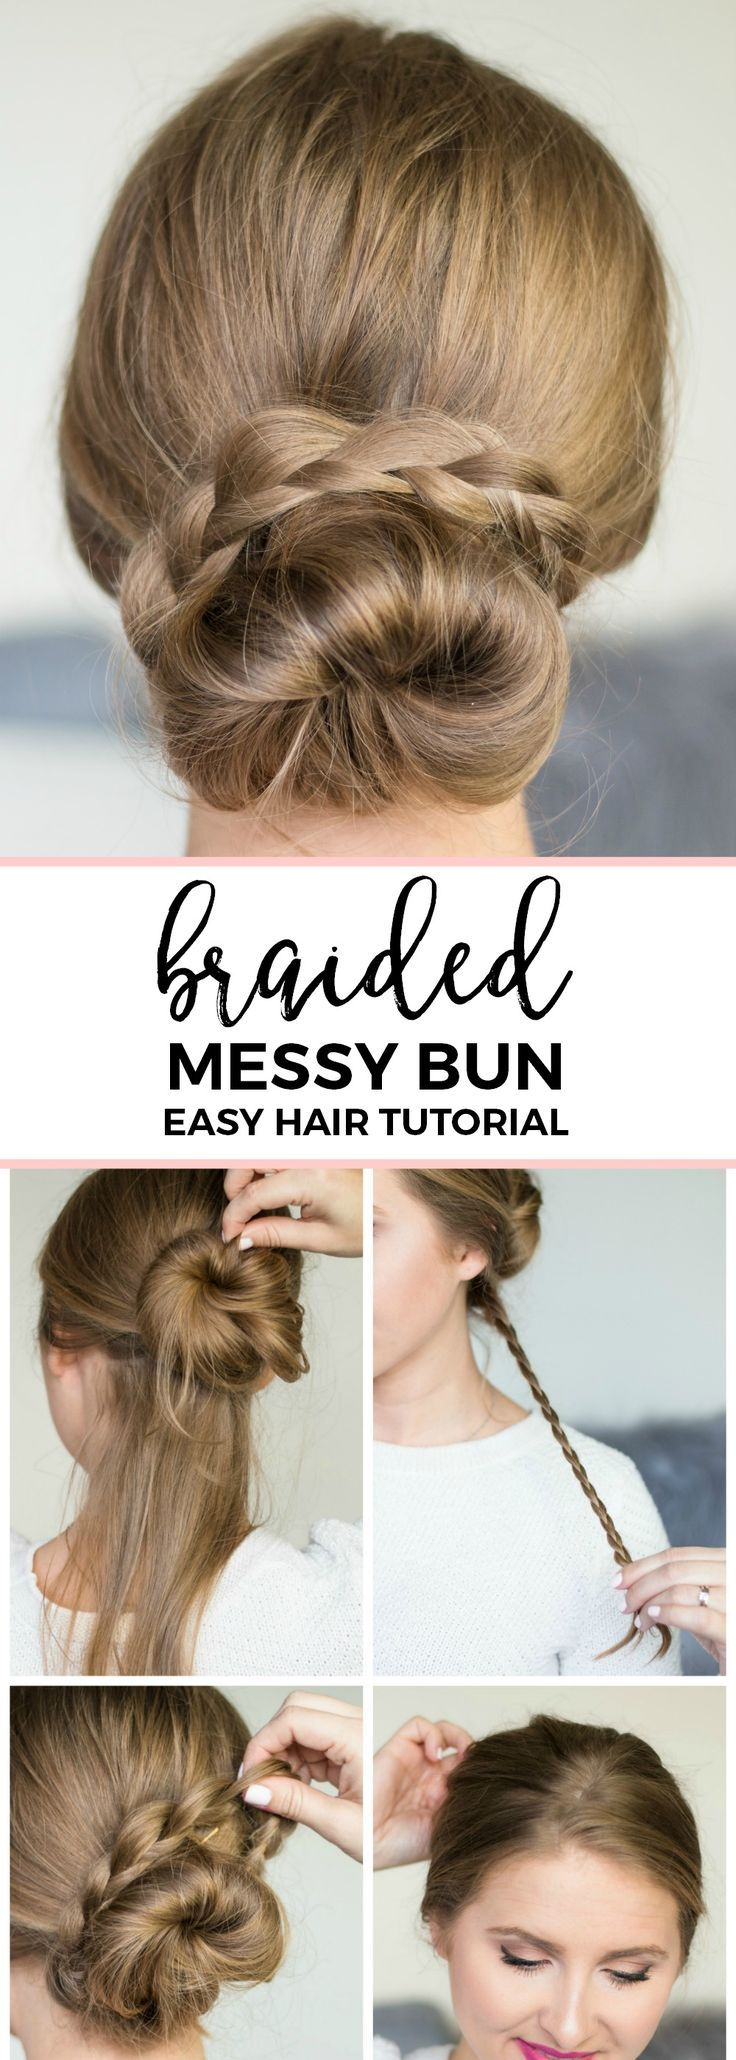 Quick u easy hairstyle tutorials best shampoo u conditioner for